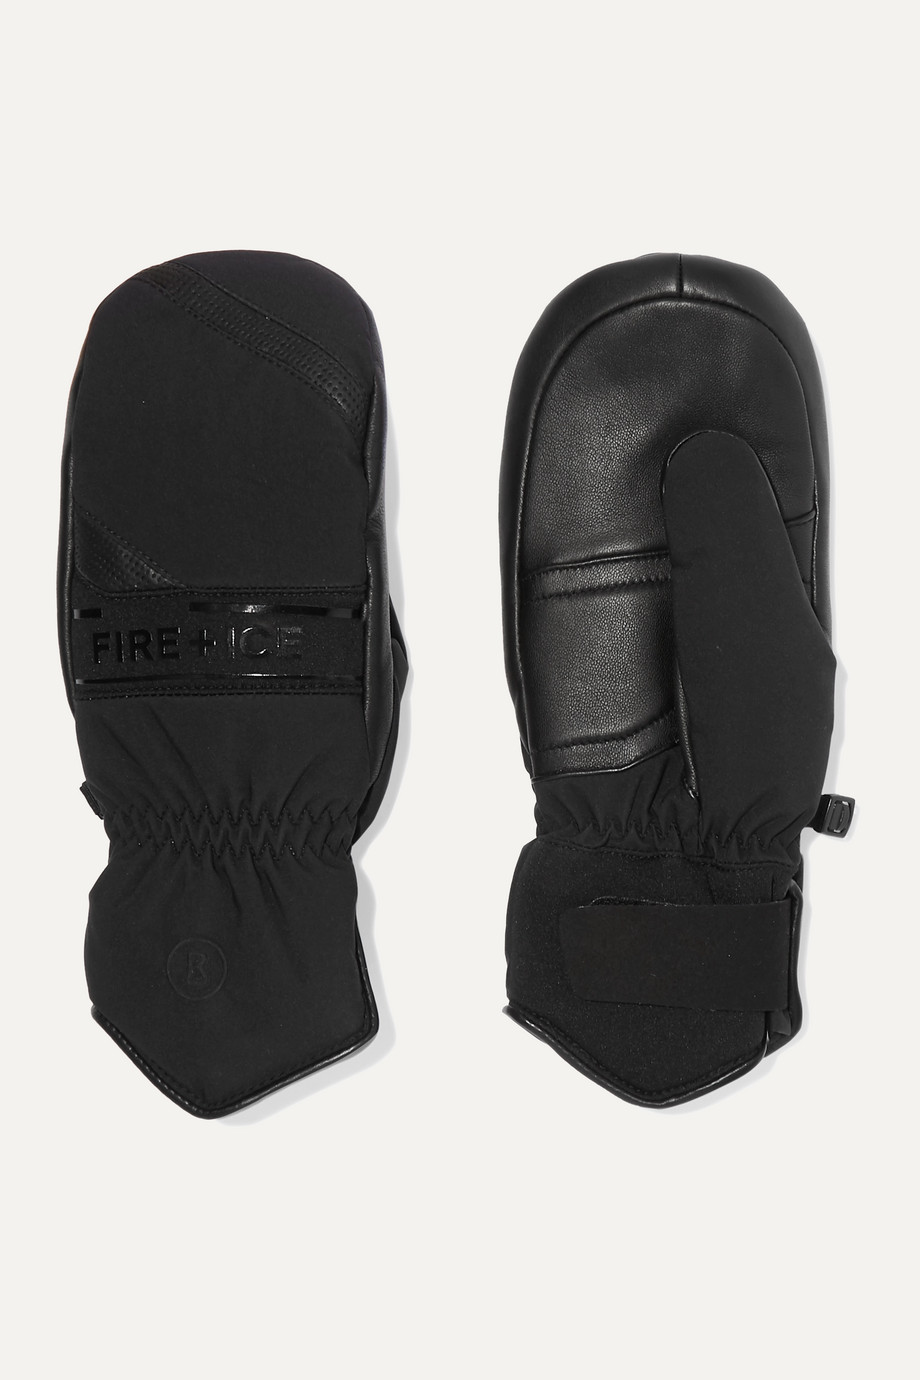 BOGNER FIRE+ICE Petula padded leather and shell ski mittens